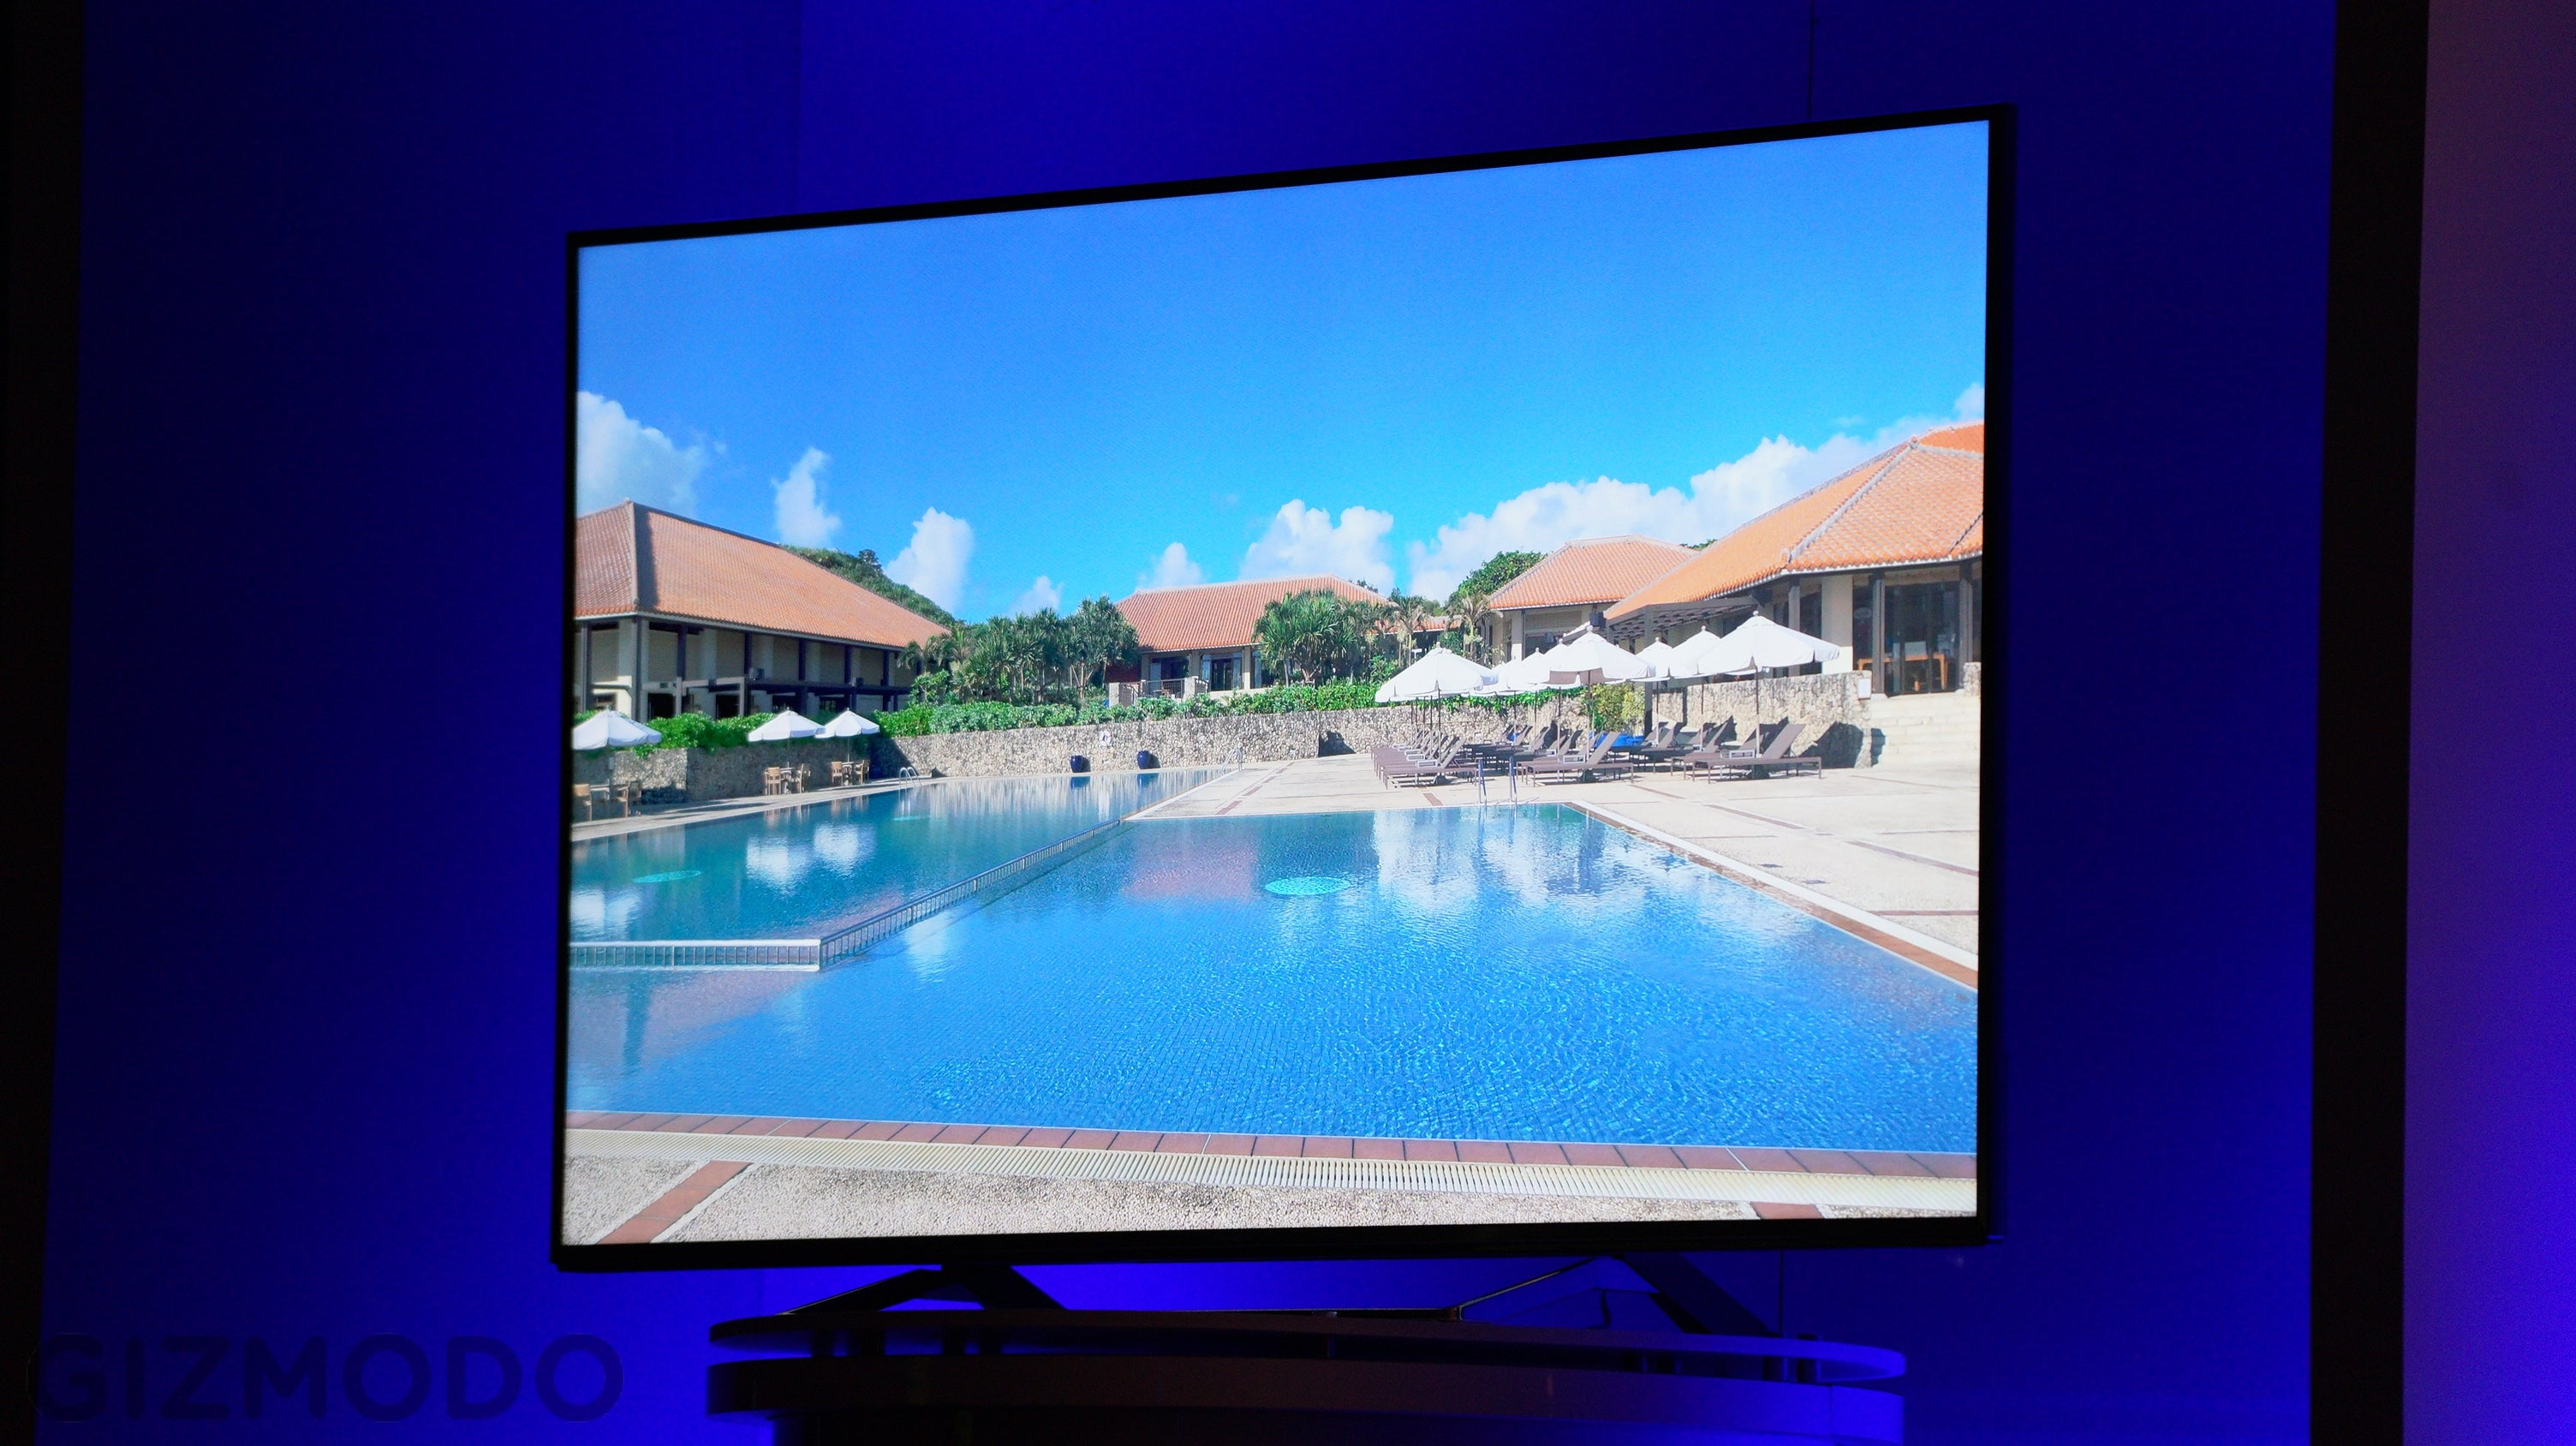 Panasonic's New UHD TVs Are as Colour Accurate as Professional Monitors